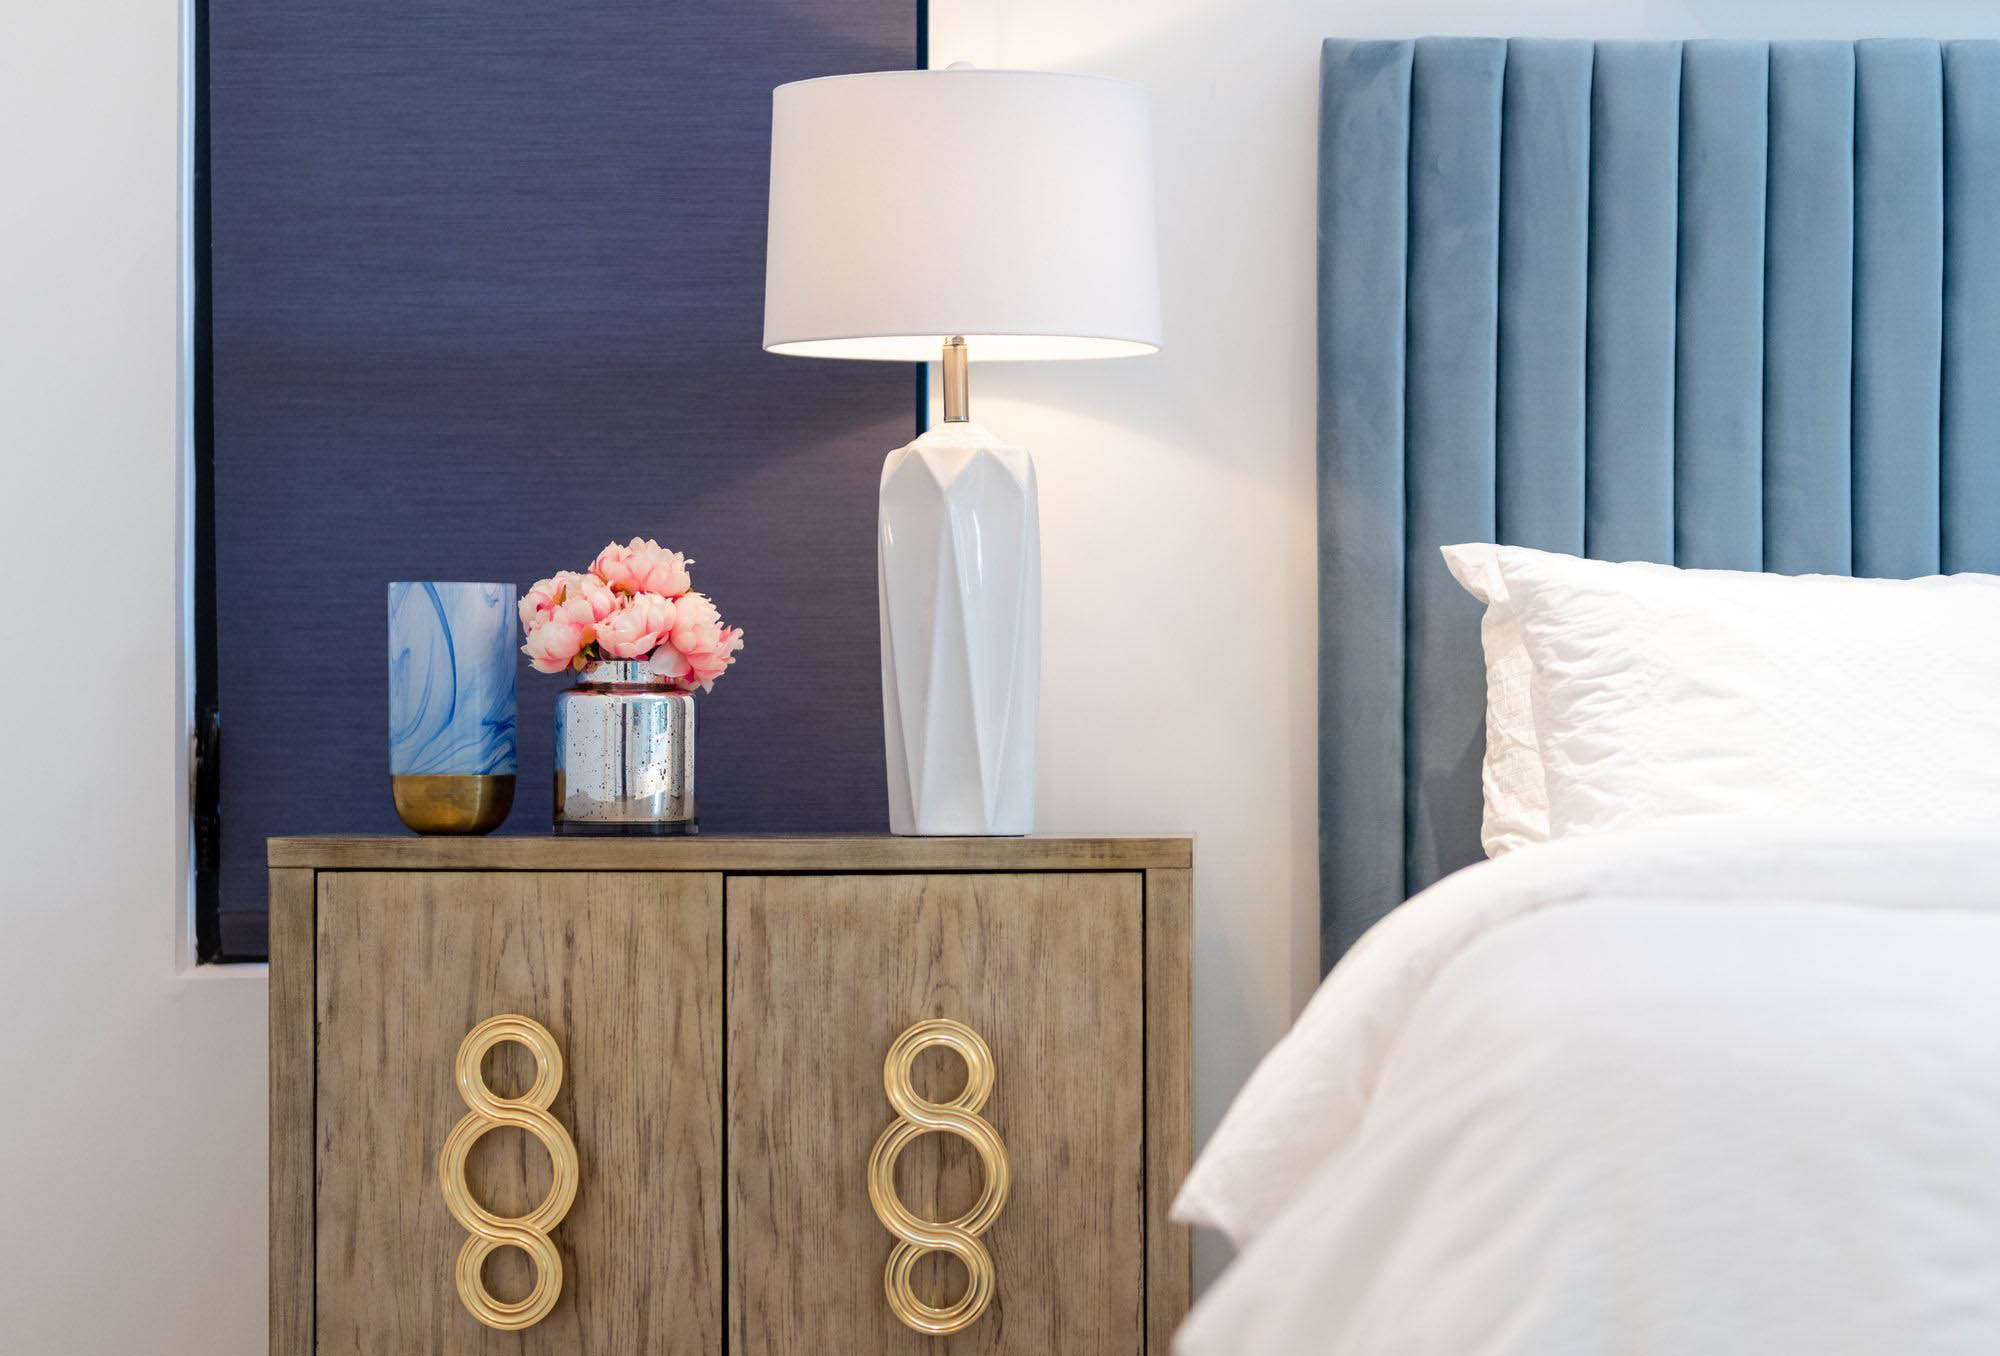 closeup view of a colorful bedside table blue plush headboard white bedding